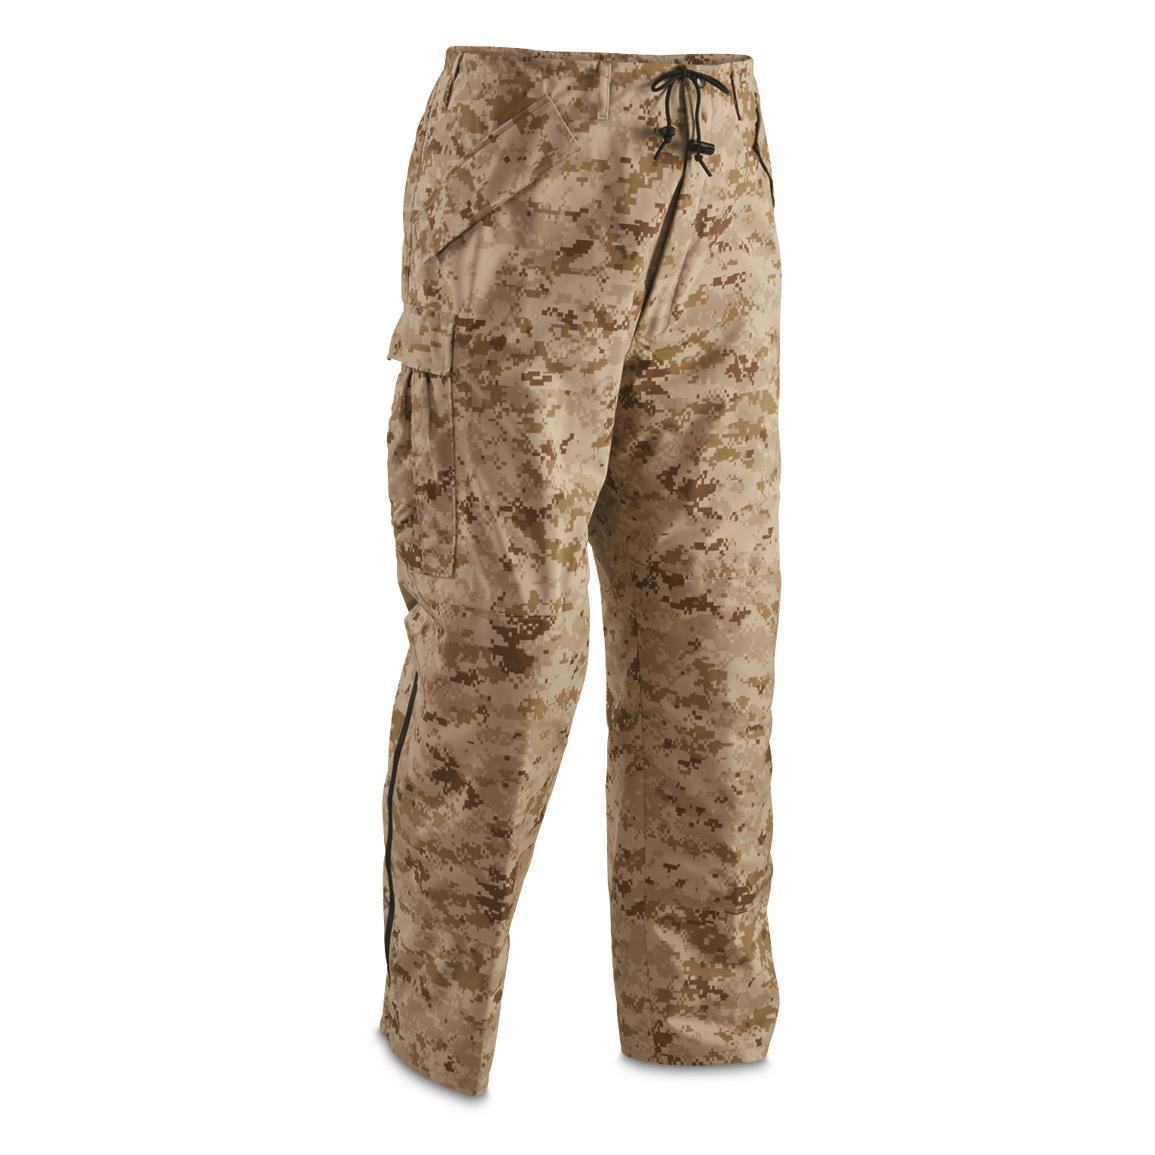 U.S. Military Desert Digital GORE-TEX Pants, New, Digital Desert